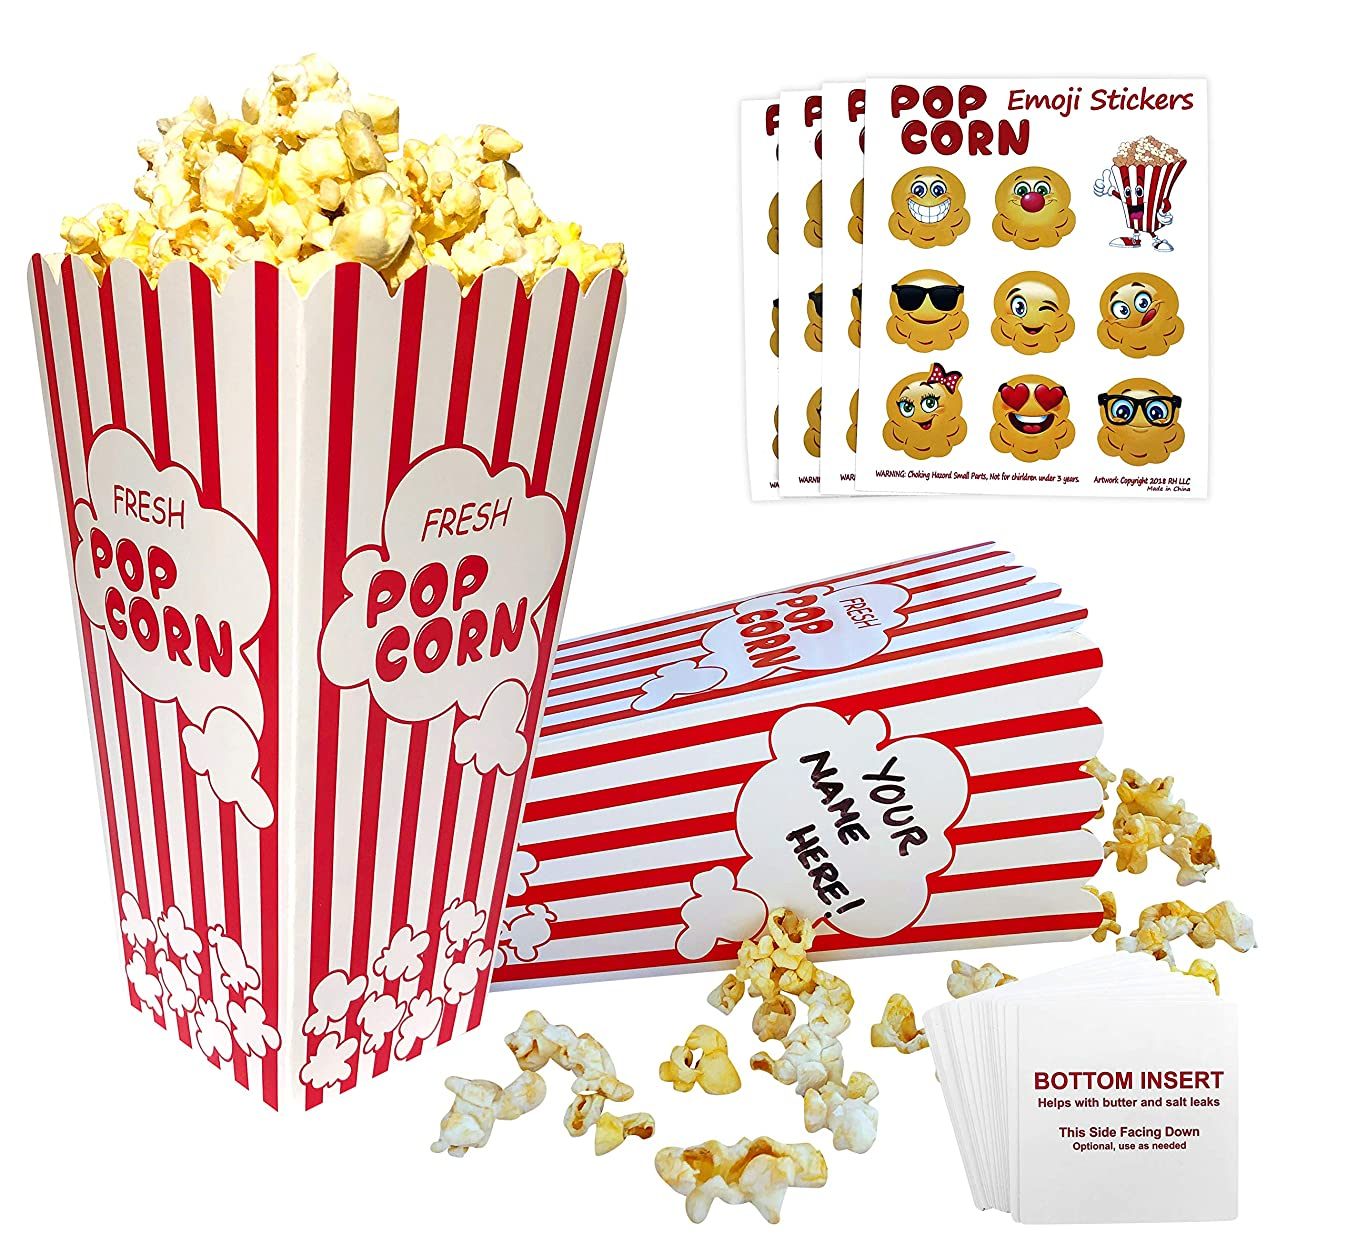 Popcorn Boxes Red and White   32 Striped Retro Design, Bottom Insert Card helps prevent leaks   BONUS - Emoji Stickers, Movie Nights, Birthdays, Schools, Carnival, Circus, Party Supplies Decorations